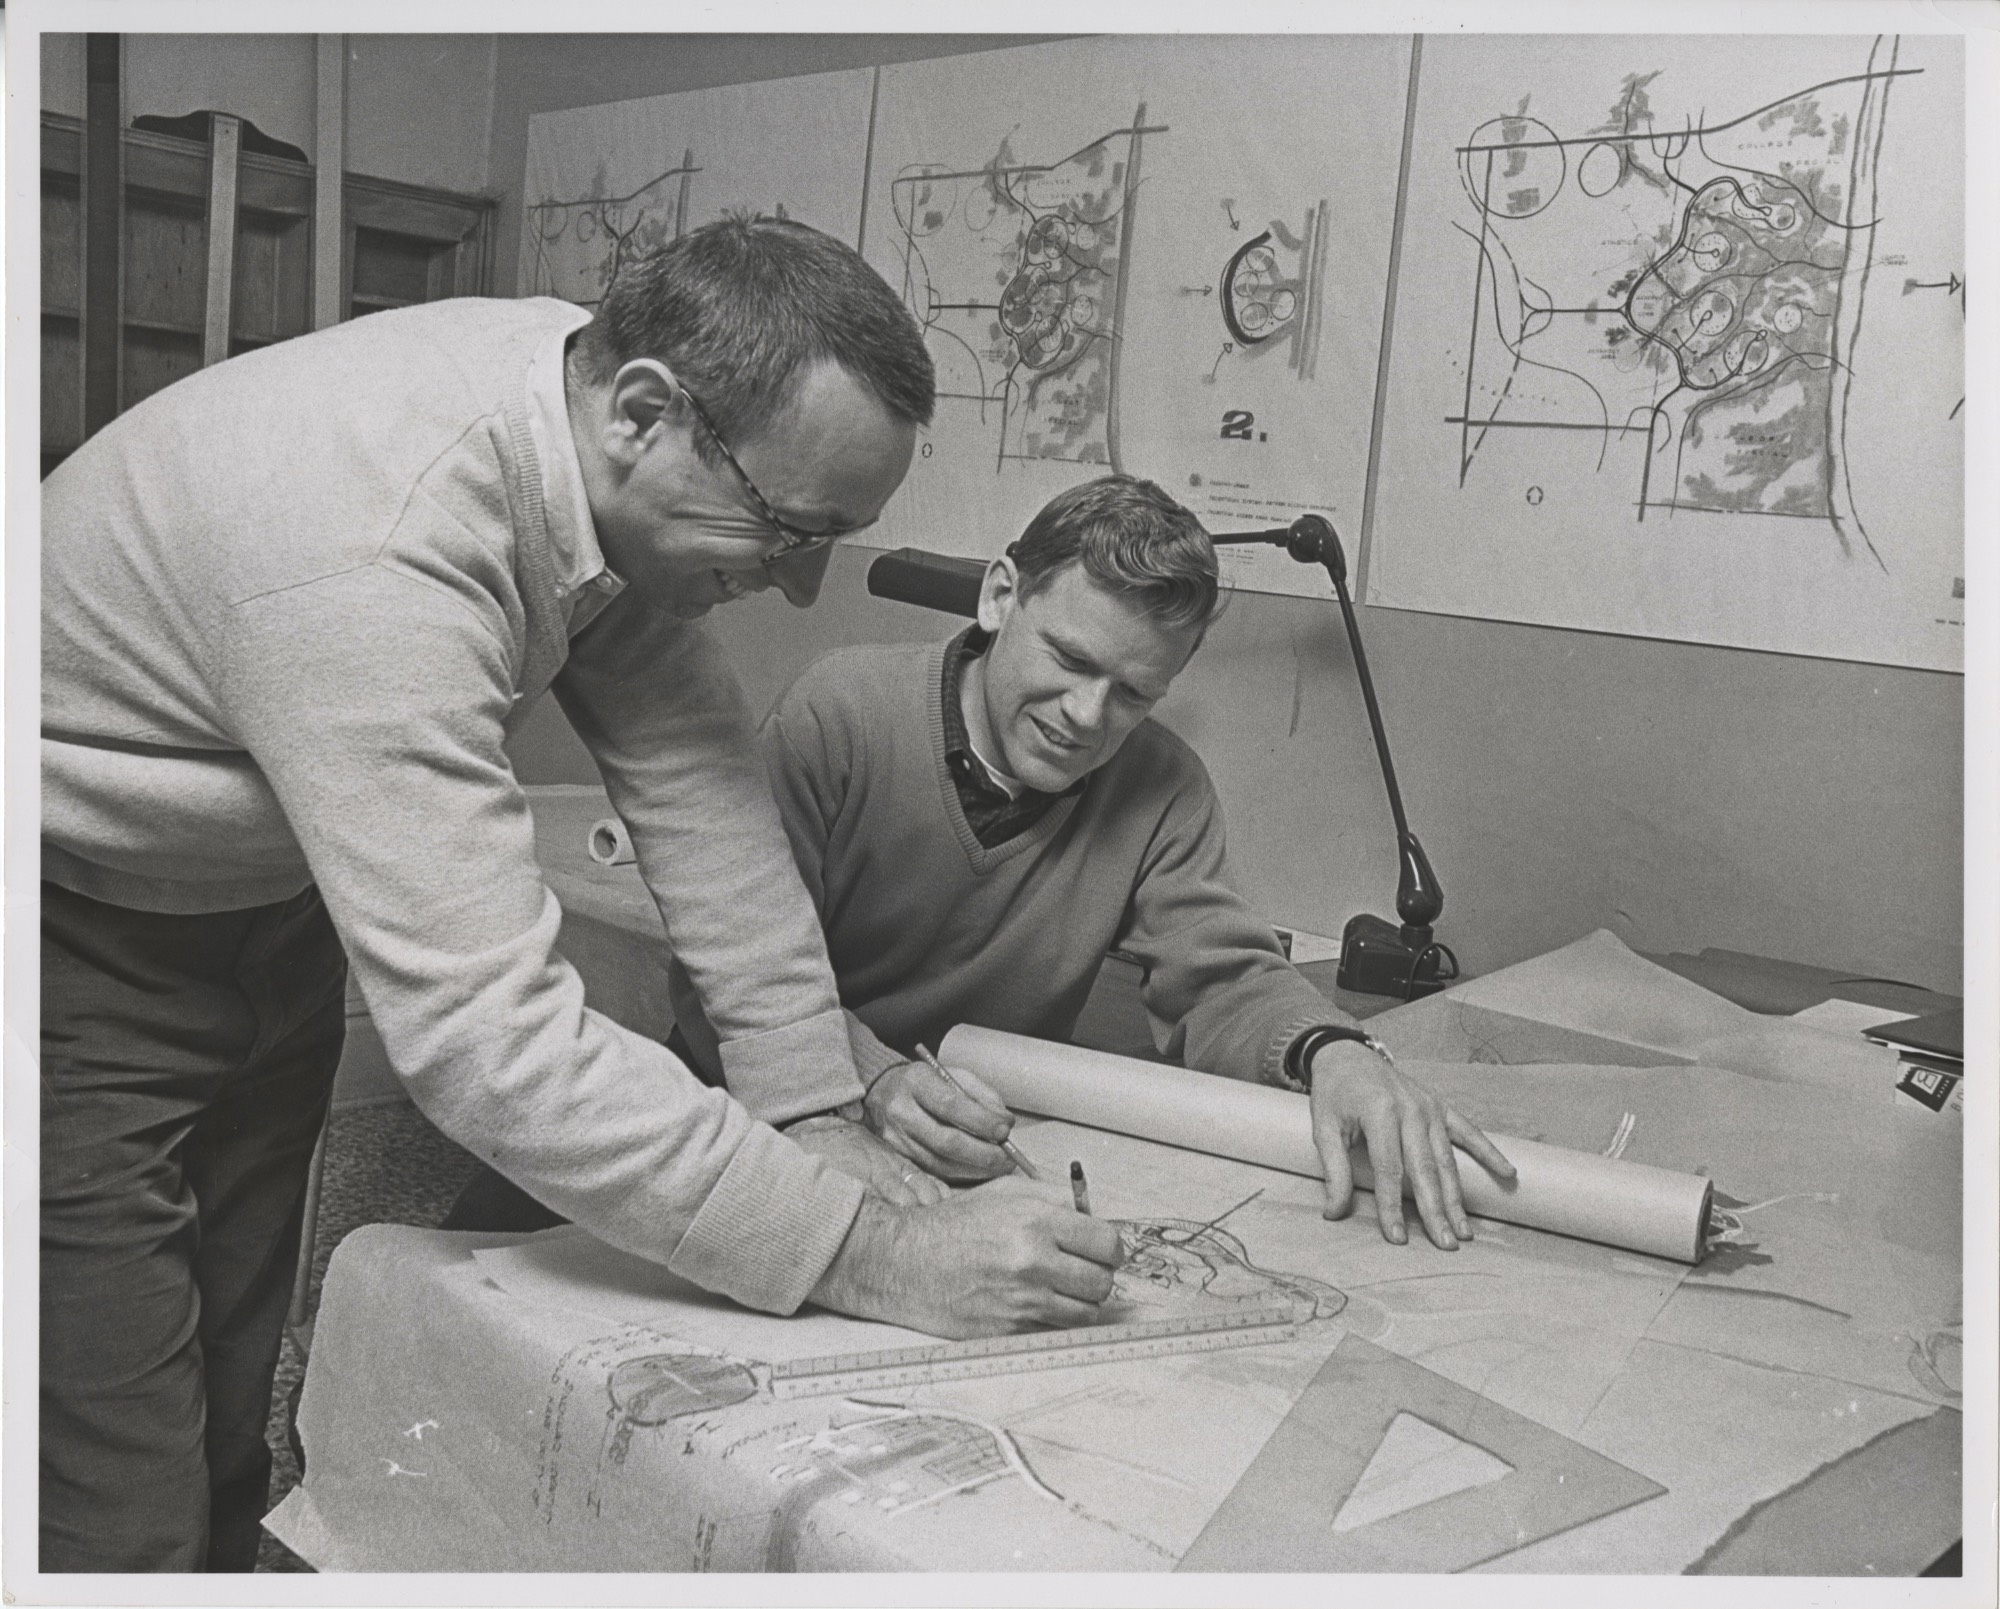 Architects from the firm of Meathe, Kessler & Associates study plans for Grand Valley State College's Allendale campus, ca. 1960.